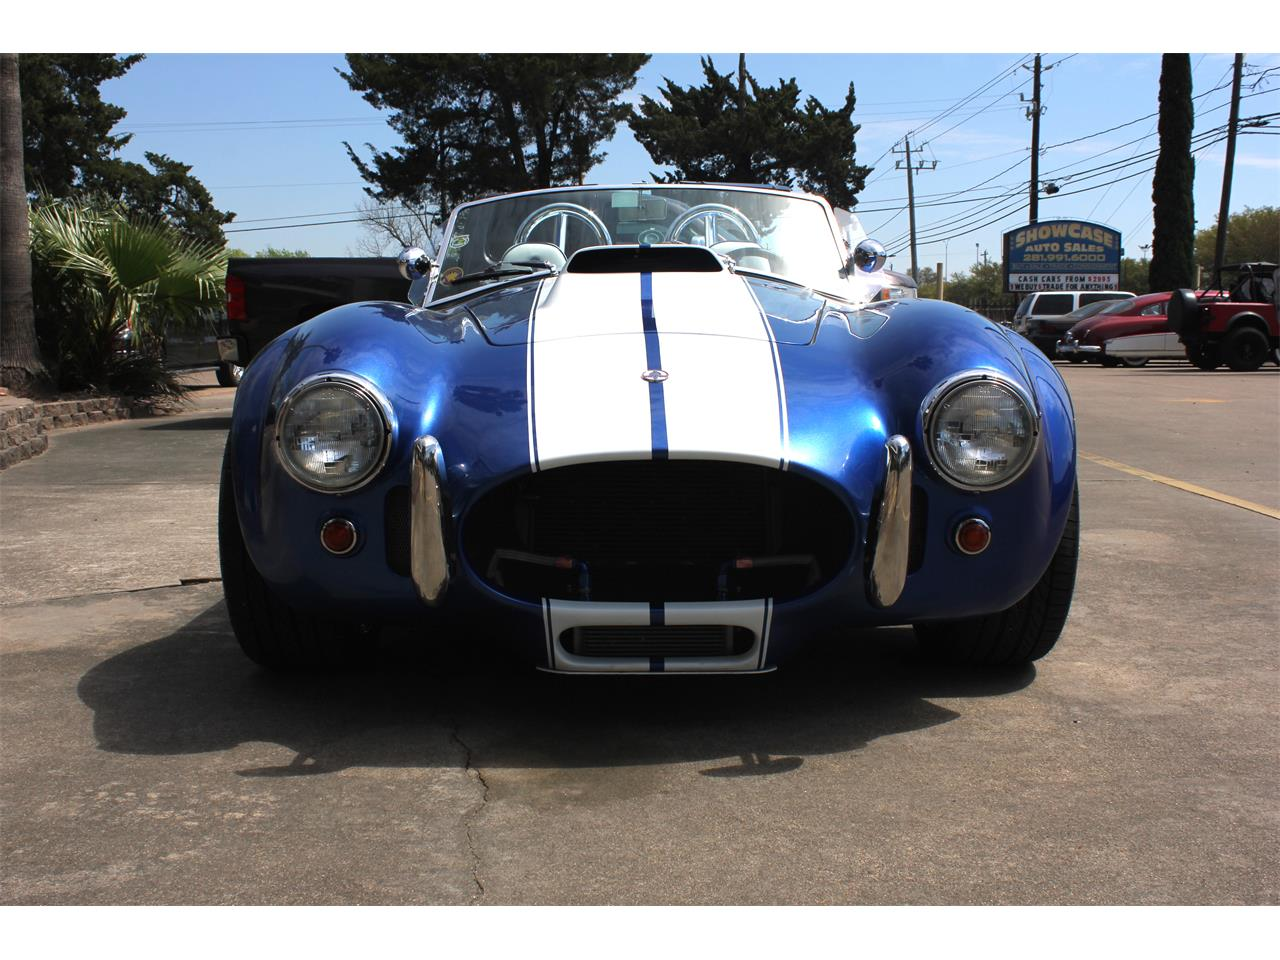 Large Picture of '66 Shelby Cobra Replica located in Texas Offered by a Private Seller - Q2D3